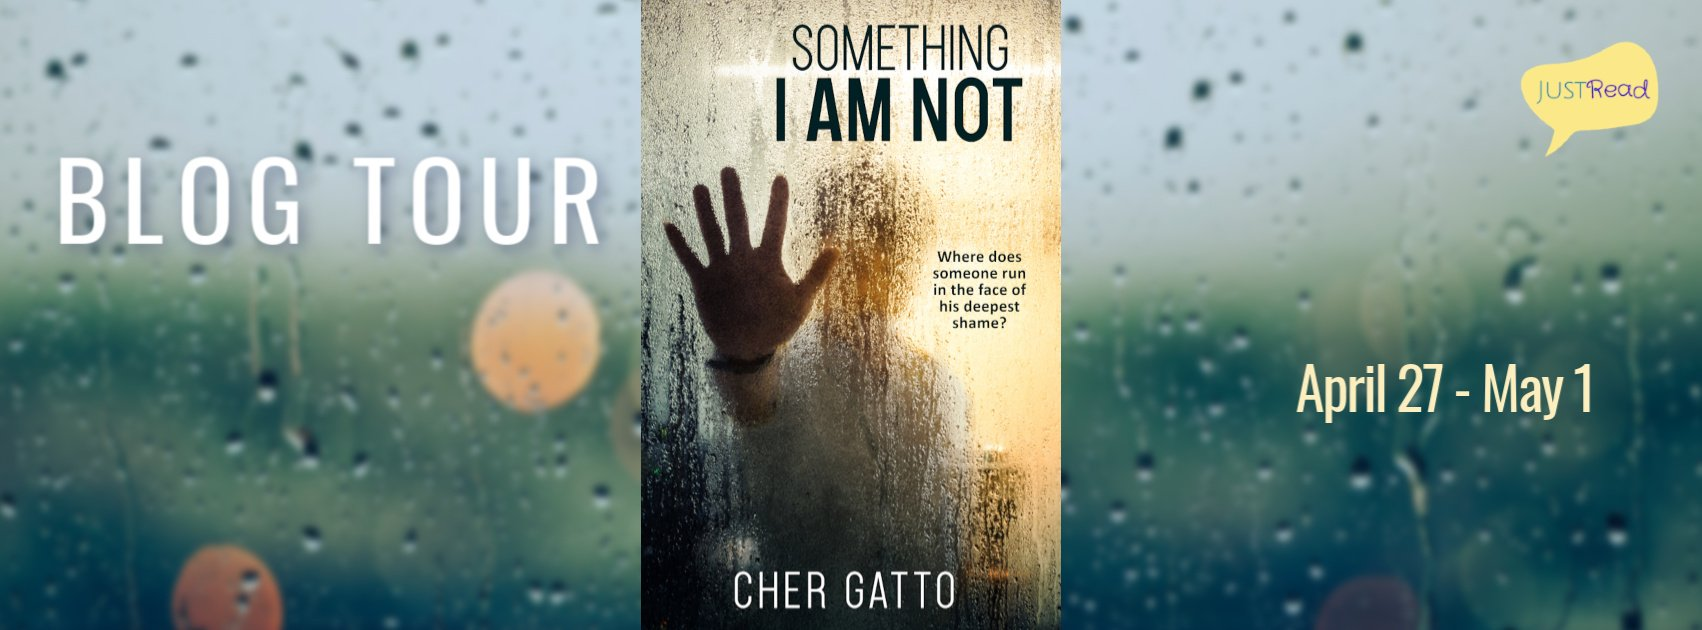 Something I Am Not Blog Tour